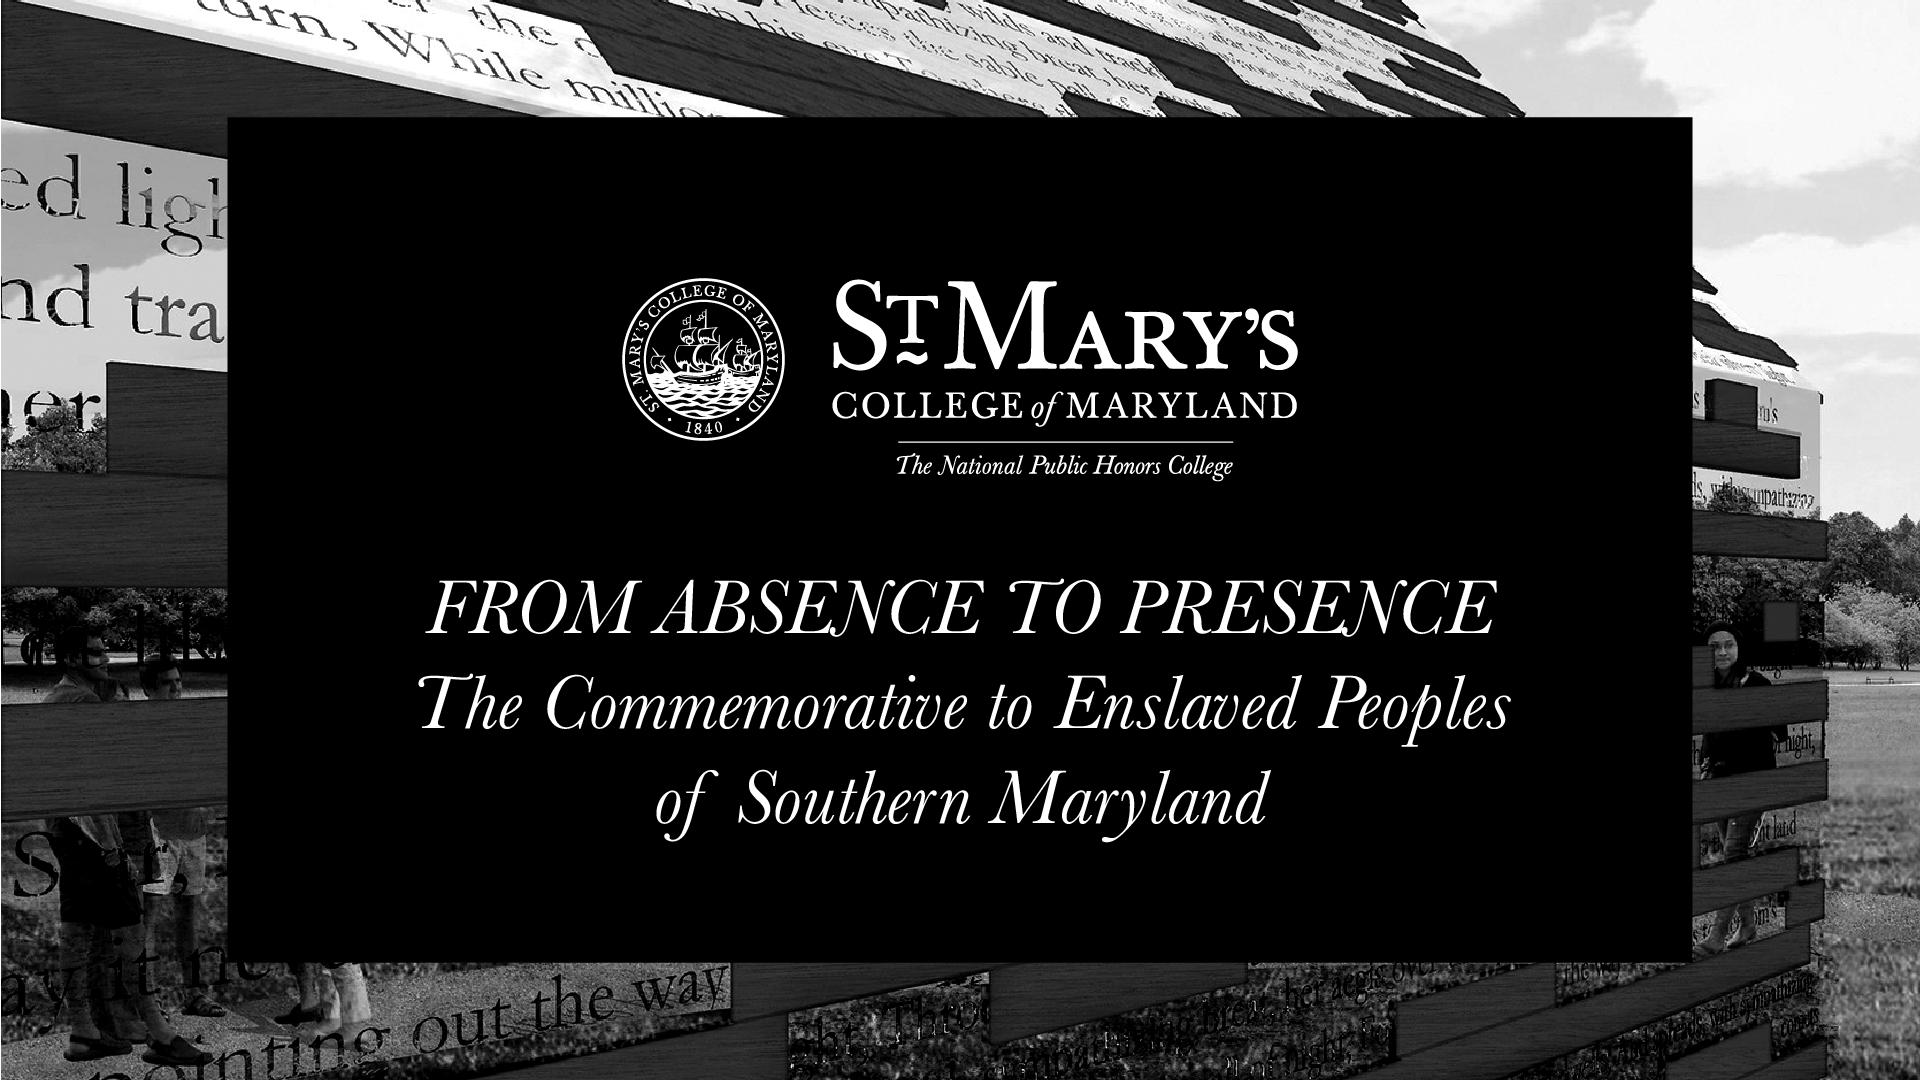 Rendering of Commemorative with words FROM ABSENCE TO PRESENCE THE VIRTUAL DEDICATION OF THE COMMEMORATIVE TO ENSLAVED PEOPLES OF SOUTHERN MARYLAND